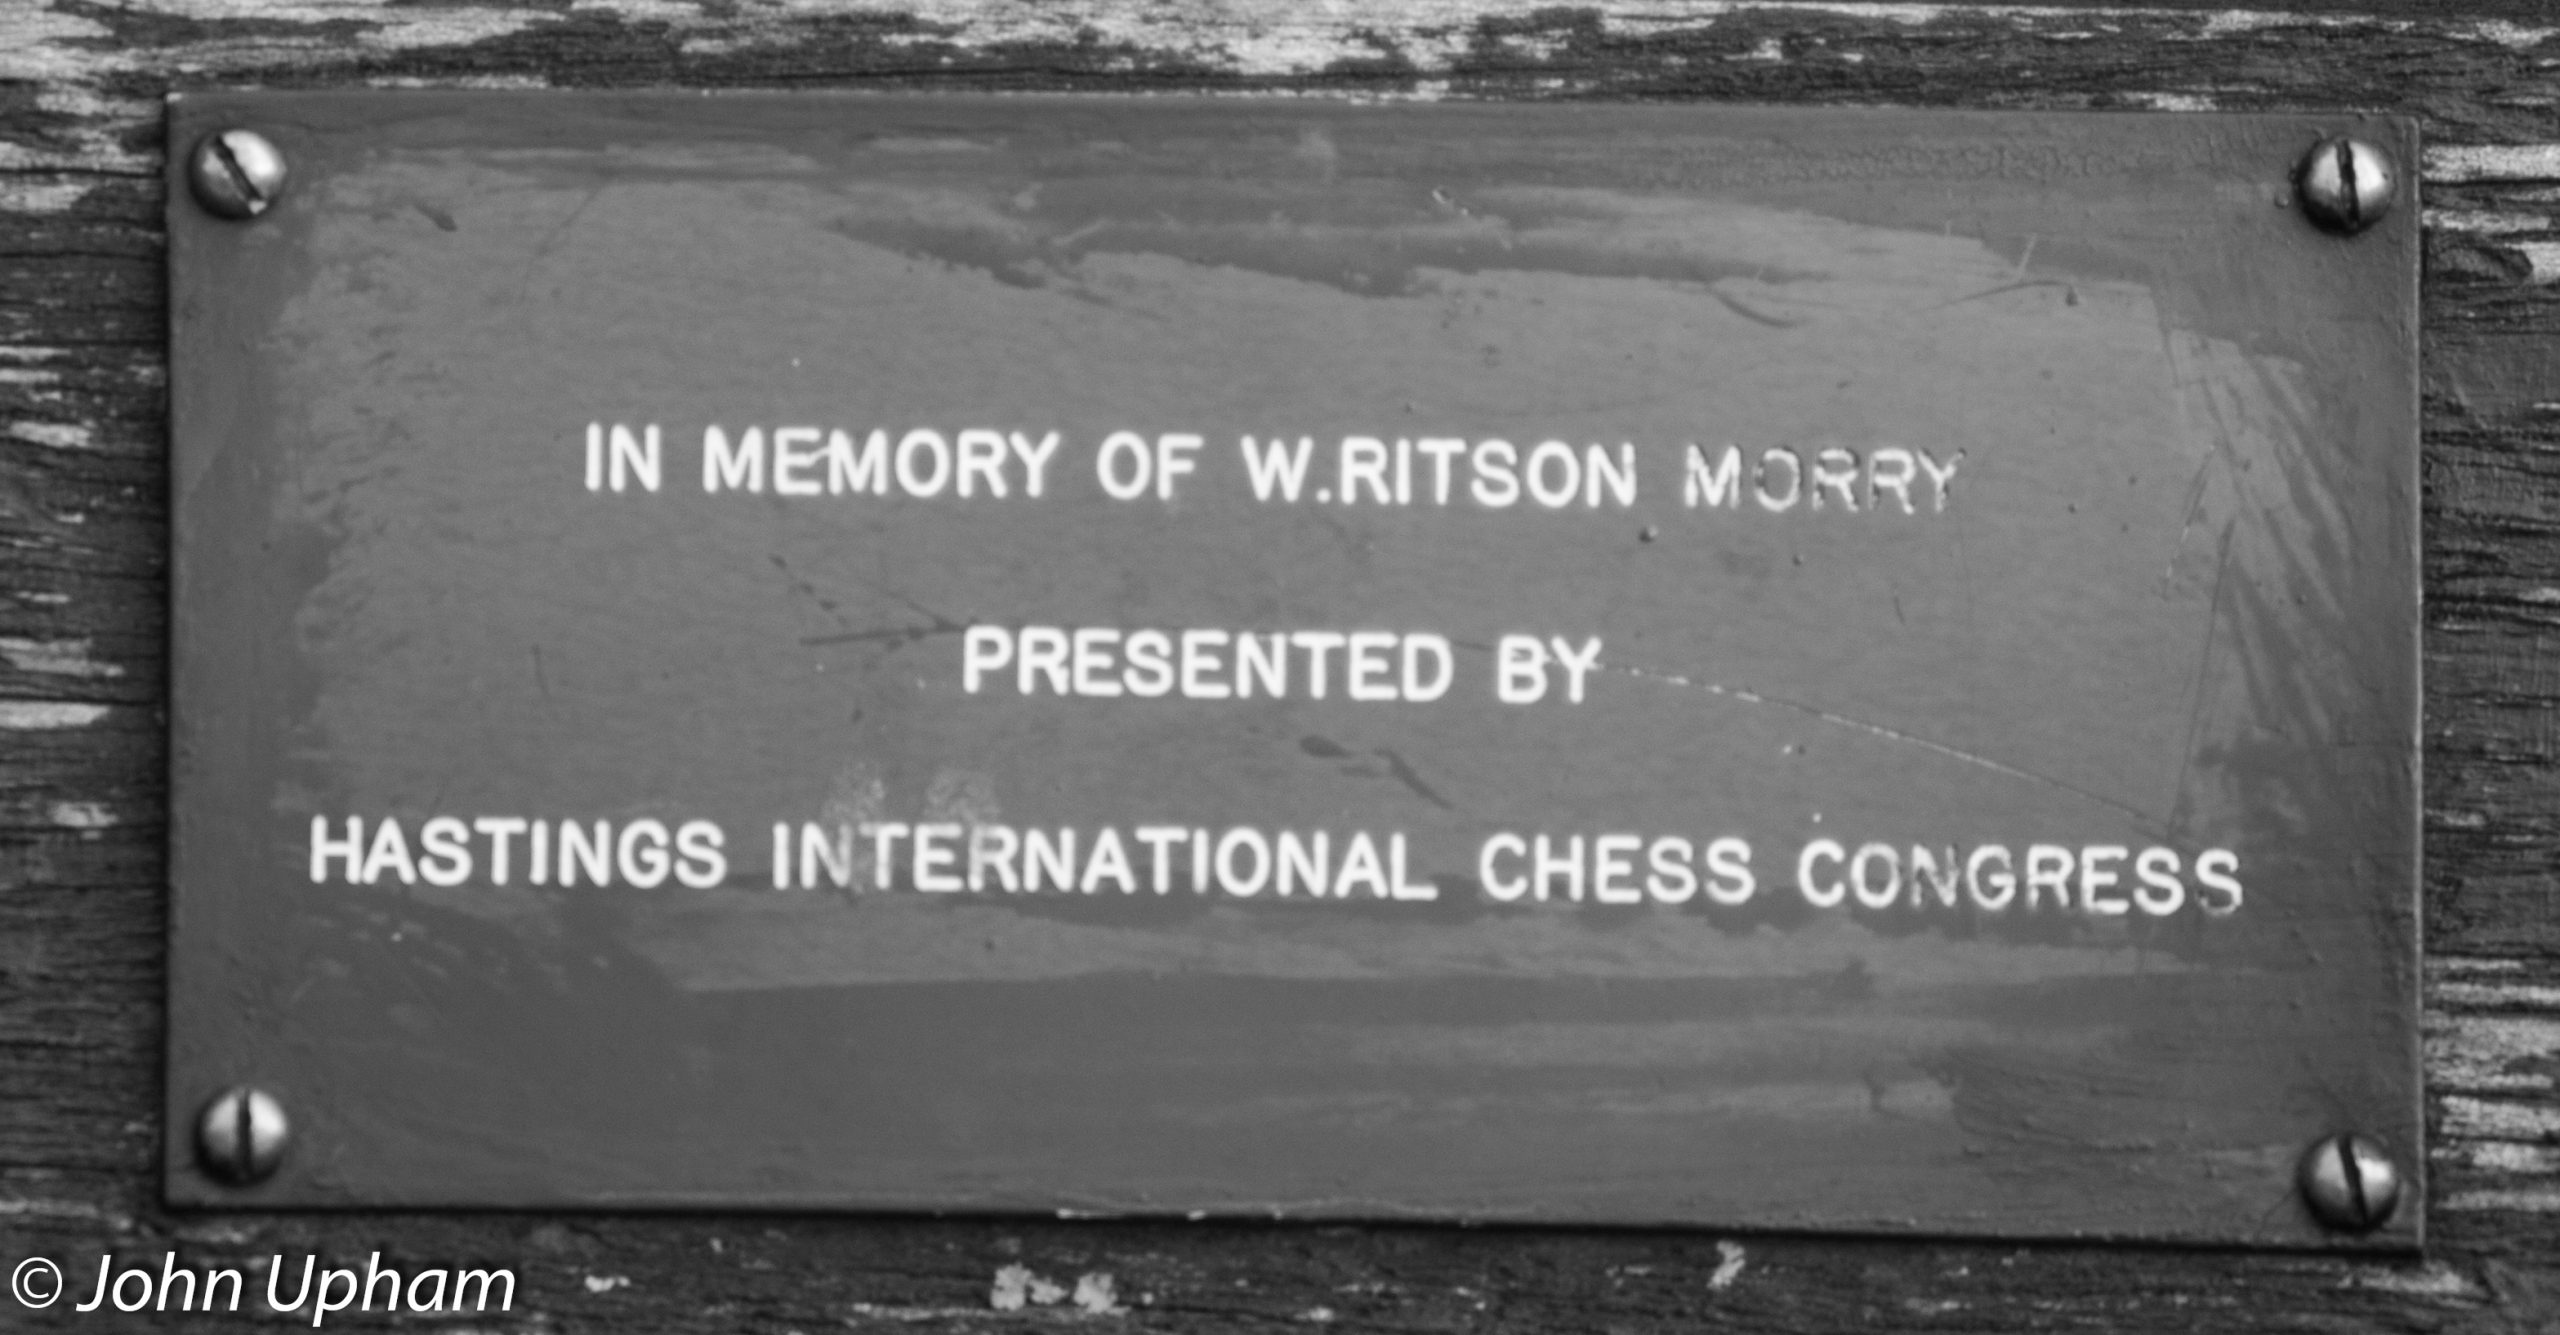 Hastings bench memorial bench for William Ritson Morry